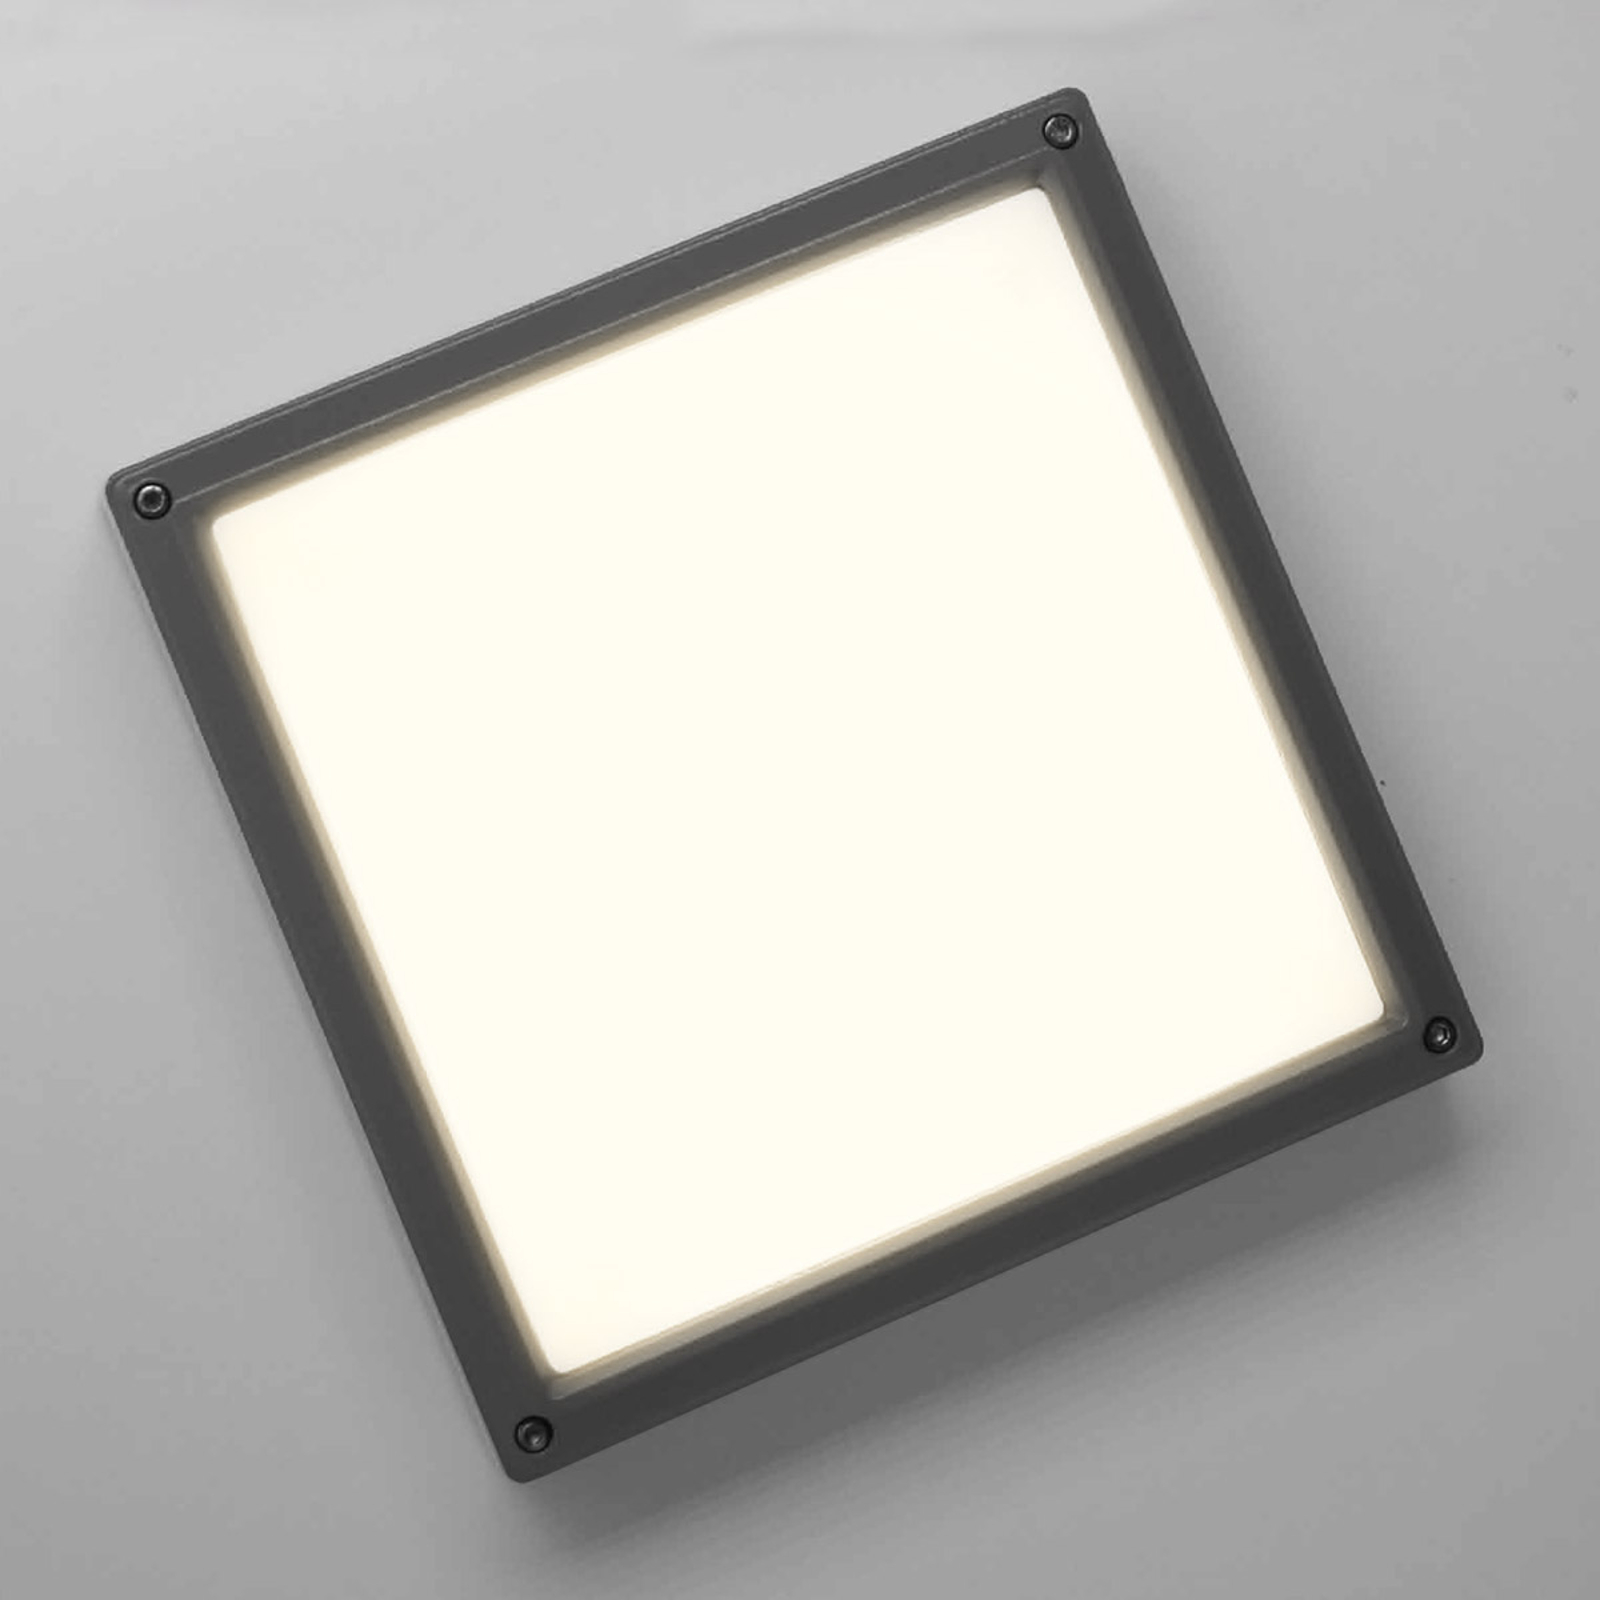 SUN 11 - LED Wandleuchte 13W, anthrazit 3K